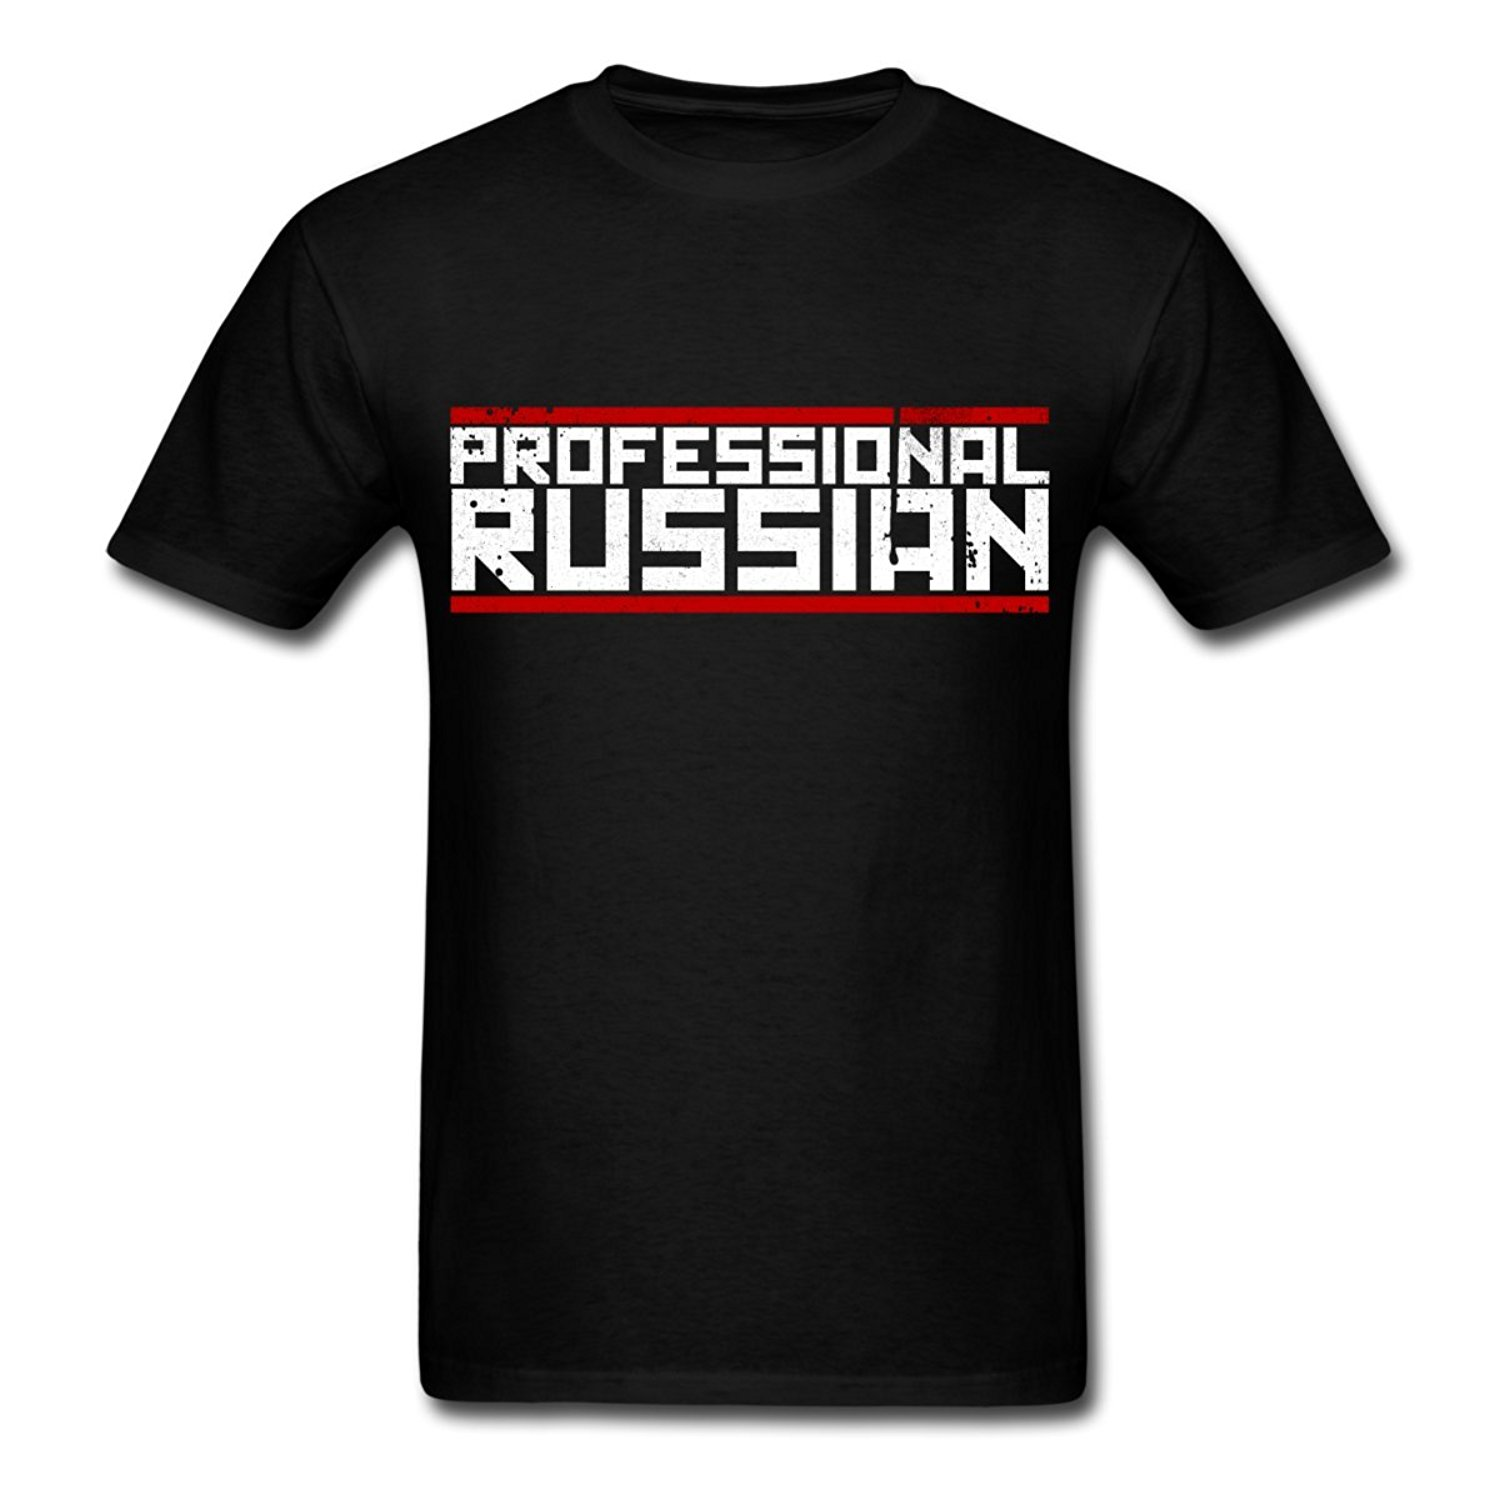 Fashion Tee Shirts 100% Cotton FPS Russia - Professional Russian Mens T-Shirt male O-Neck T Shirt short tops tee Black